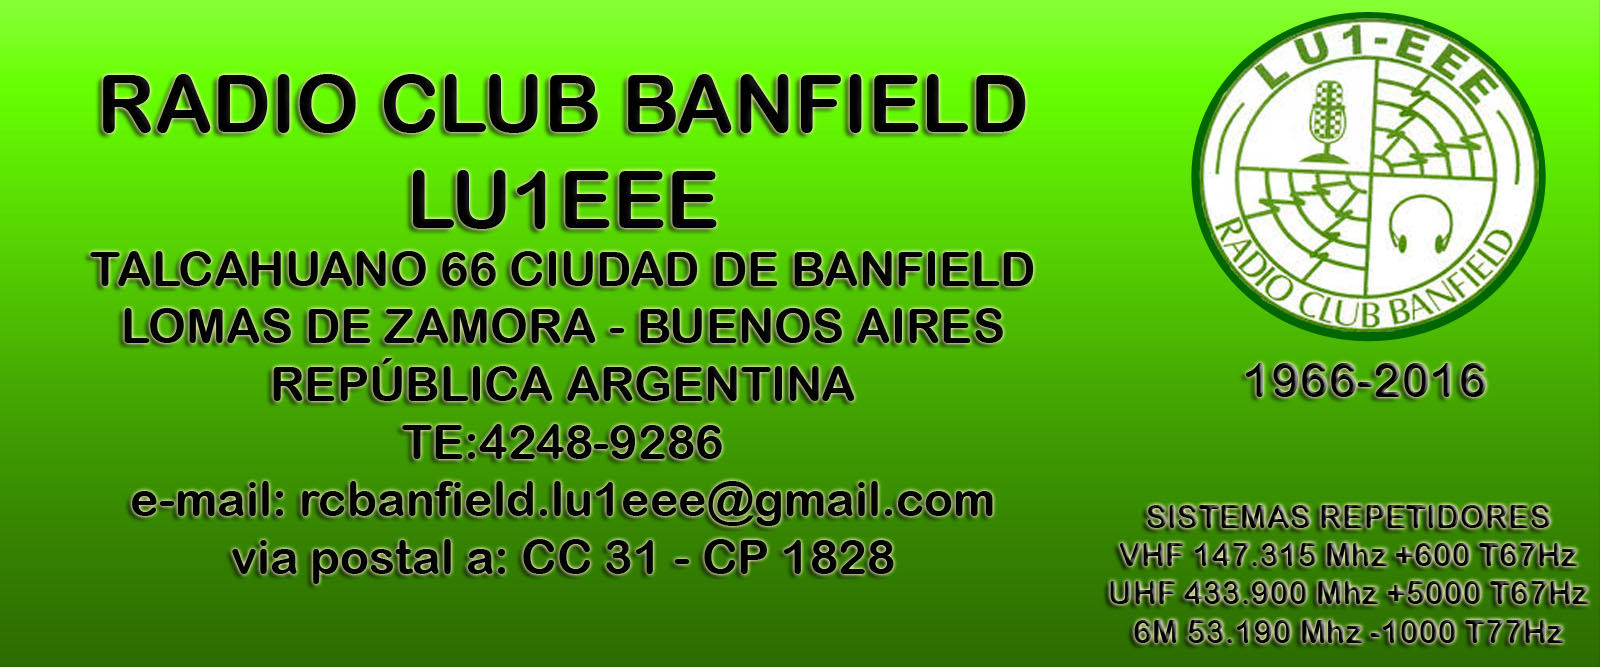 Radio Club Banfield - LU1EEE